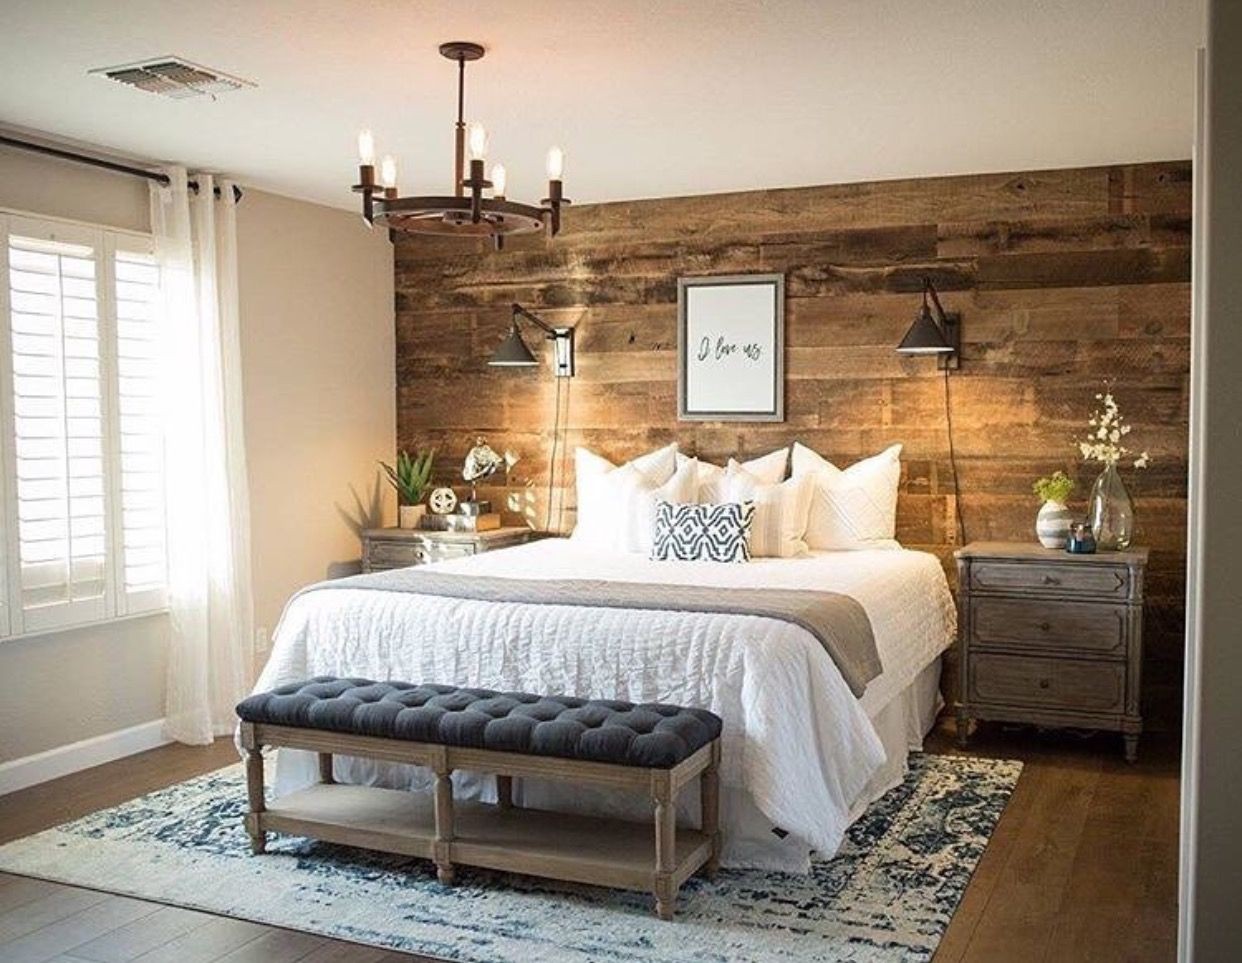 Iud like the feature wall home pinterest walls bedrooms